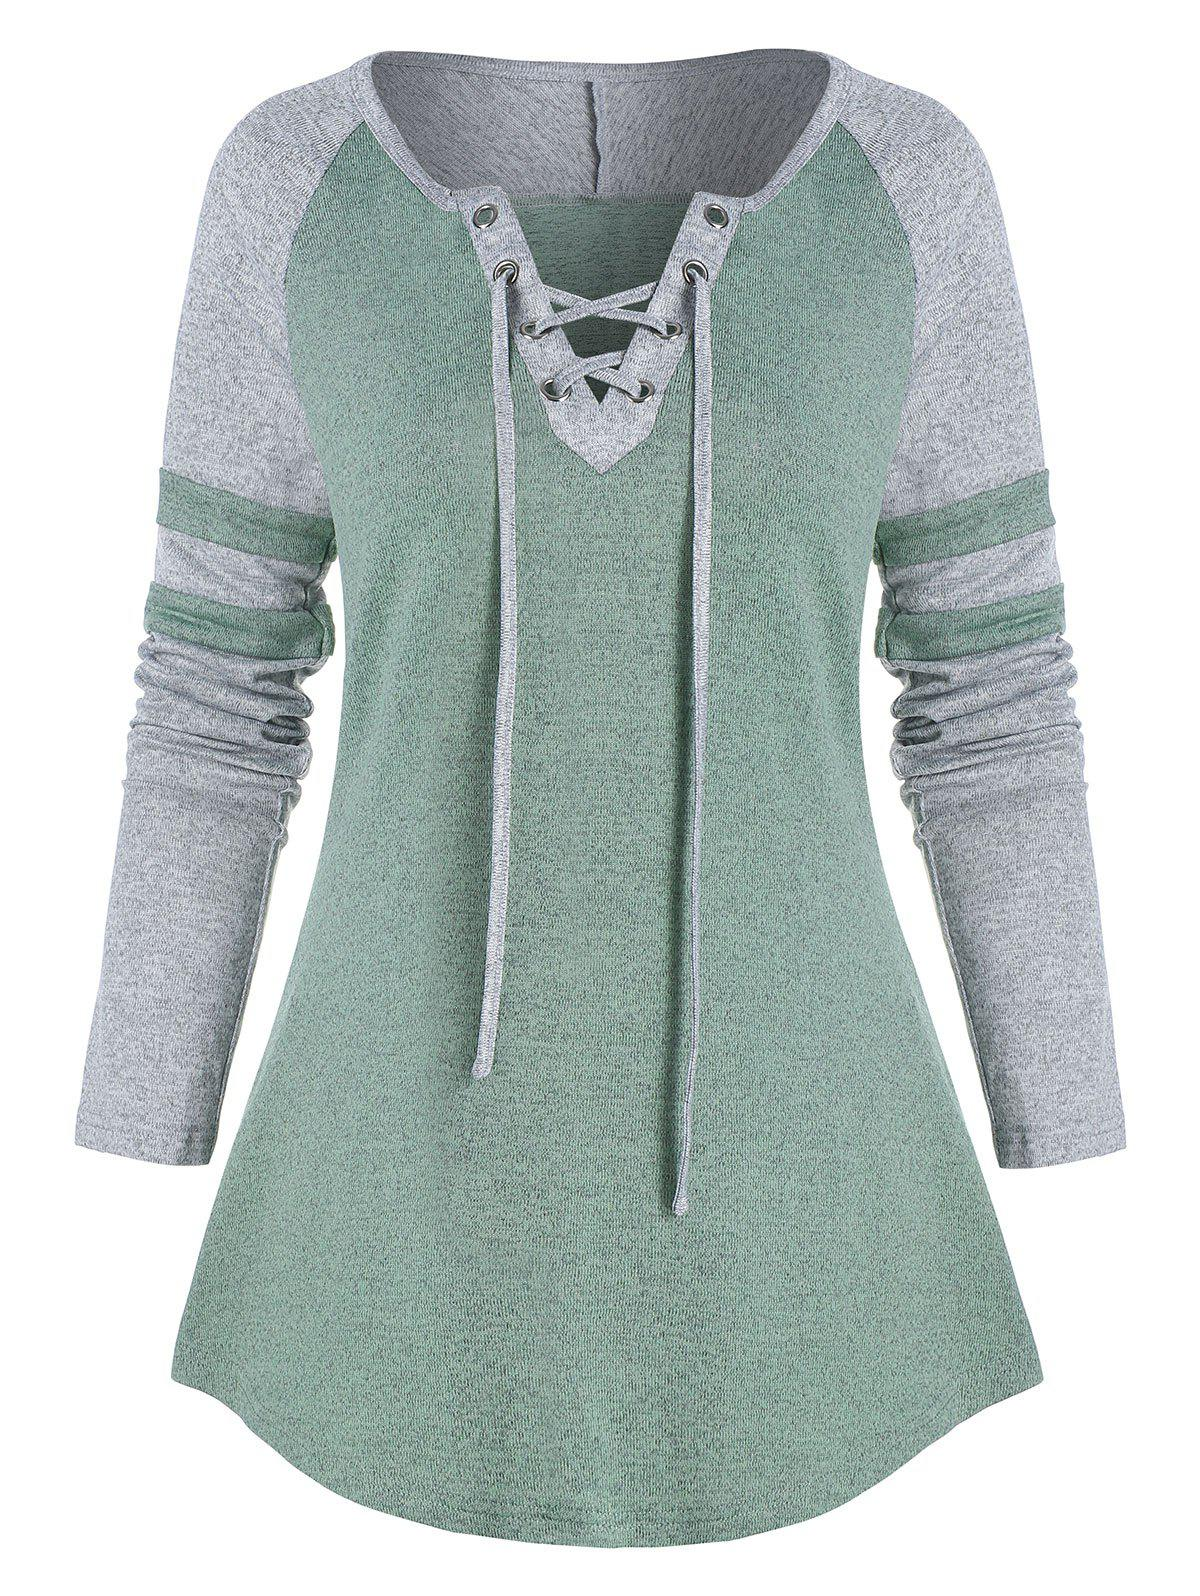 Contrast Lace-up Raglan Sleeve T-shirt - multicolor A S